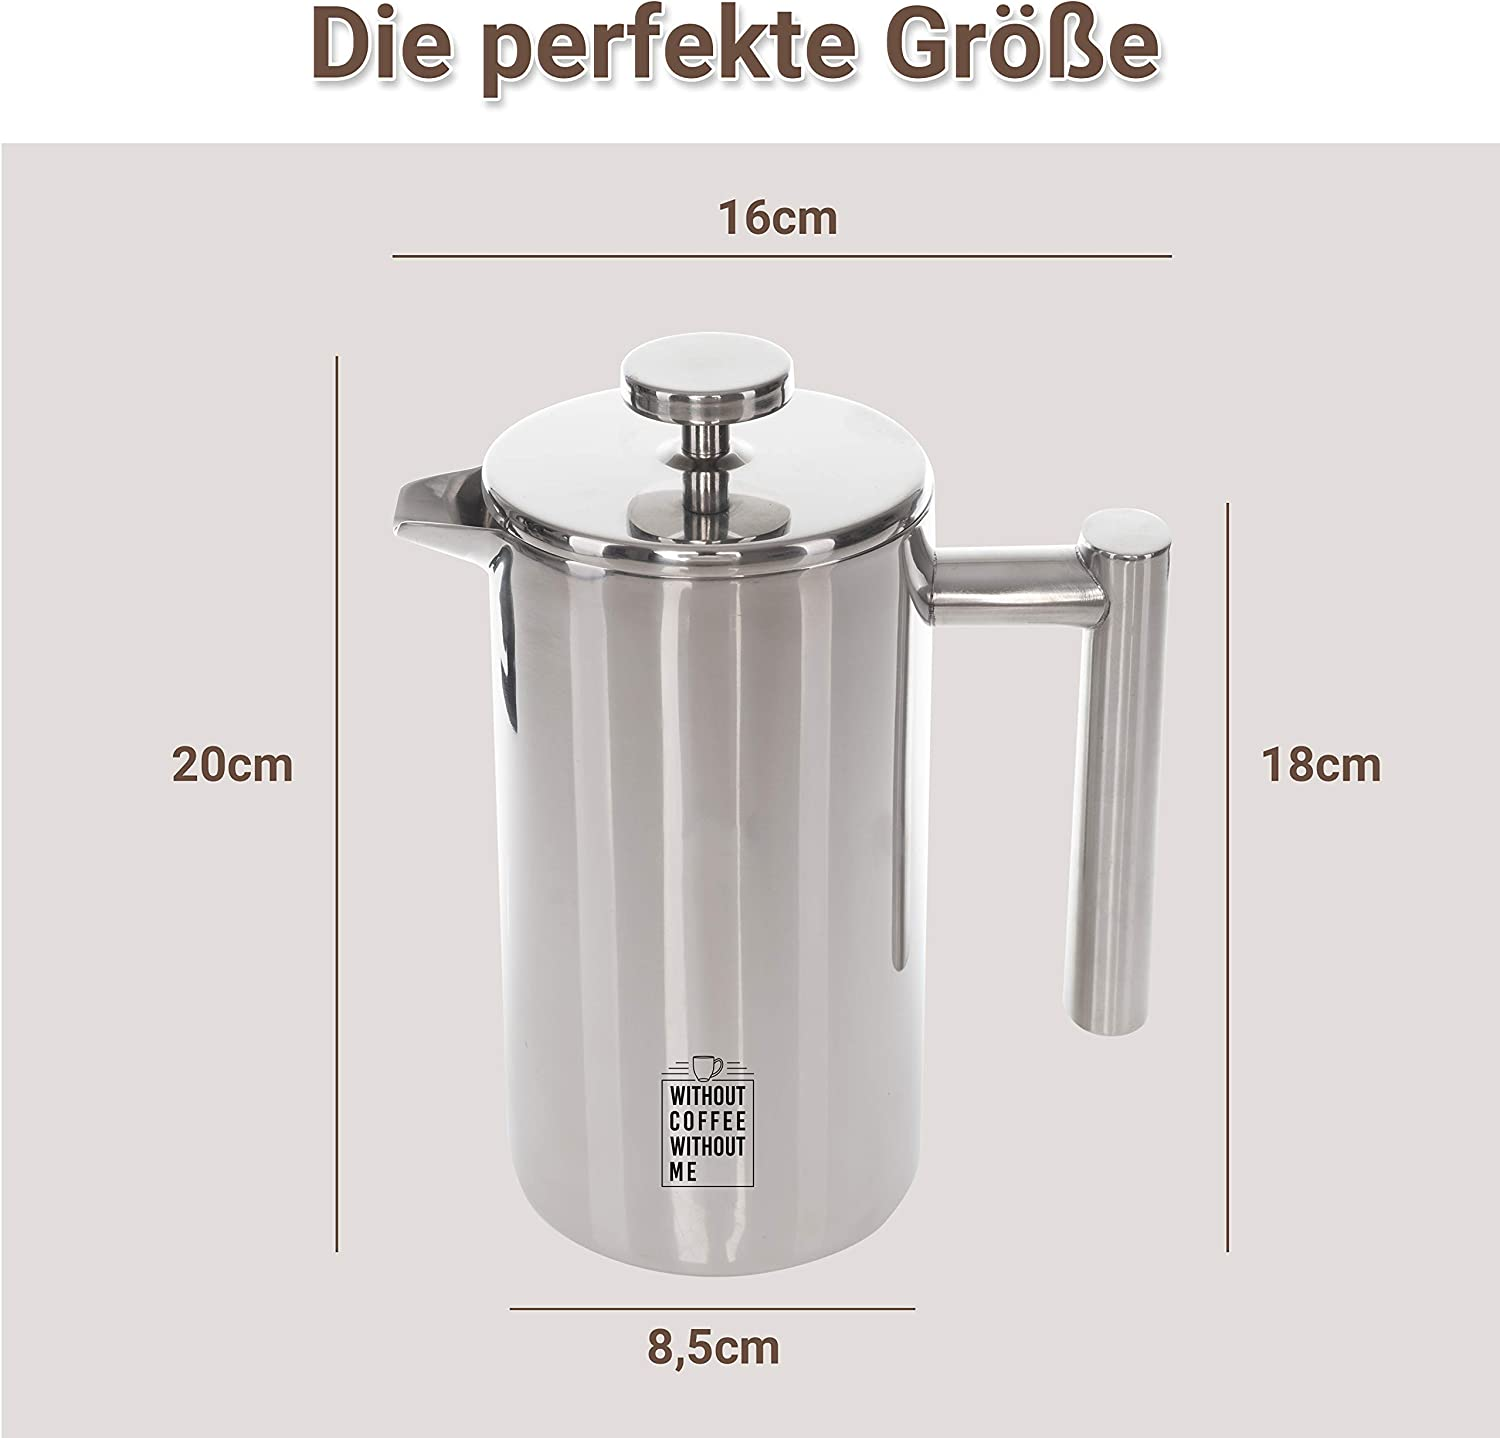 Replacement Filter Scale for Perfect Preparation Premium French Press Cafeti/ère Stainless Steel 0.6 L Insulation Effect Thanks to Double-Walled Design